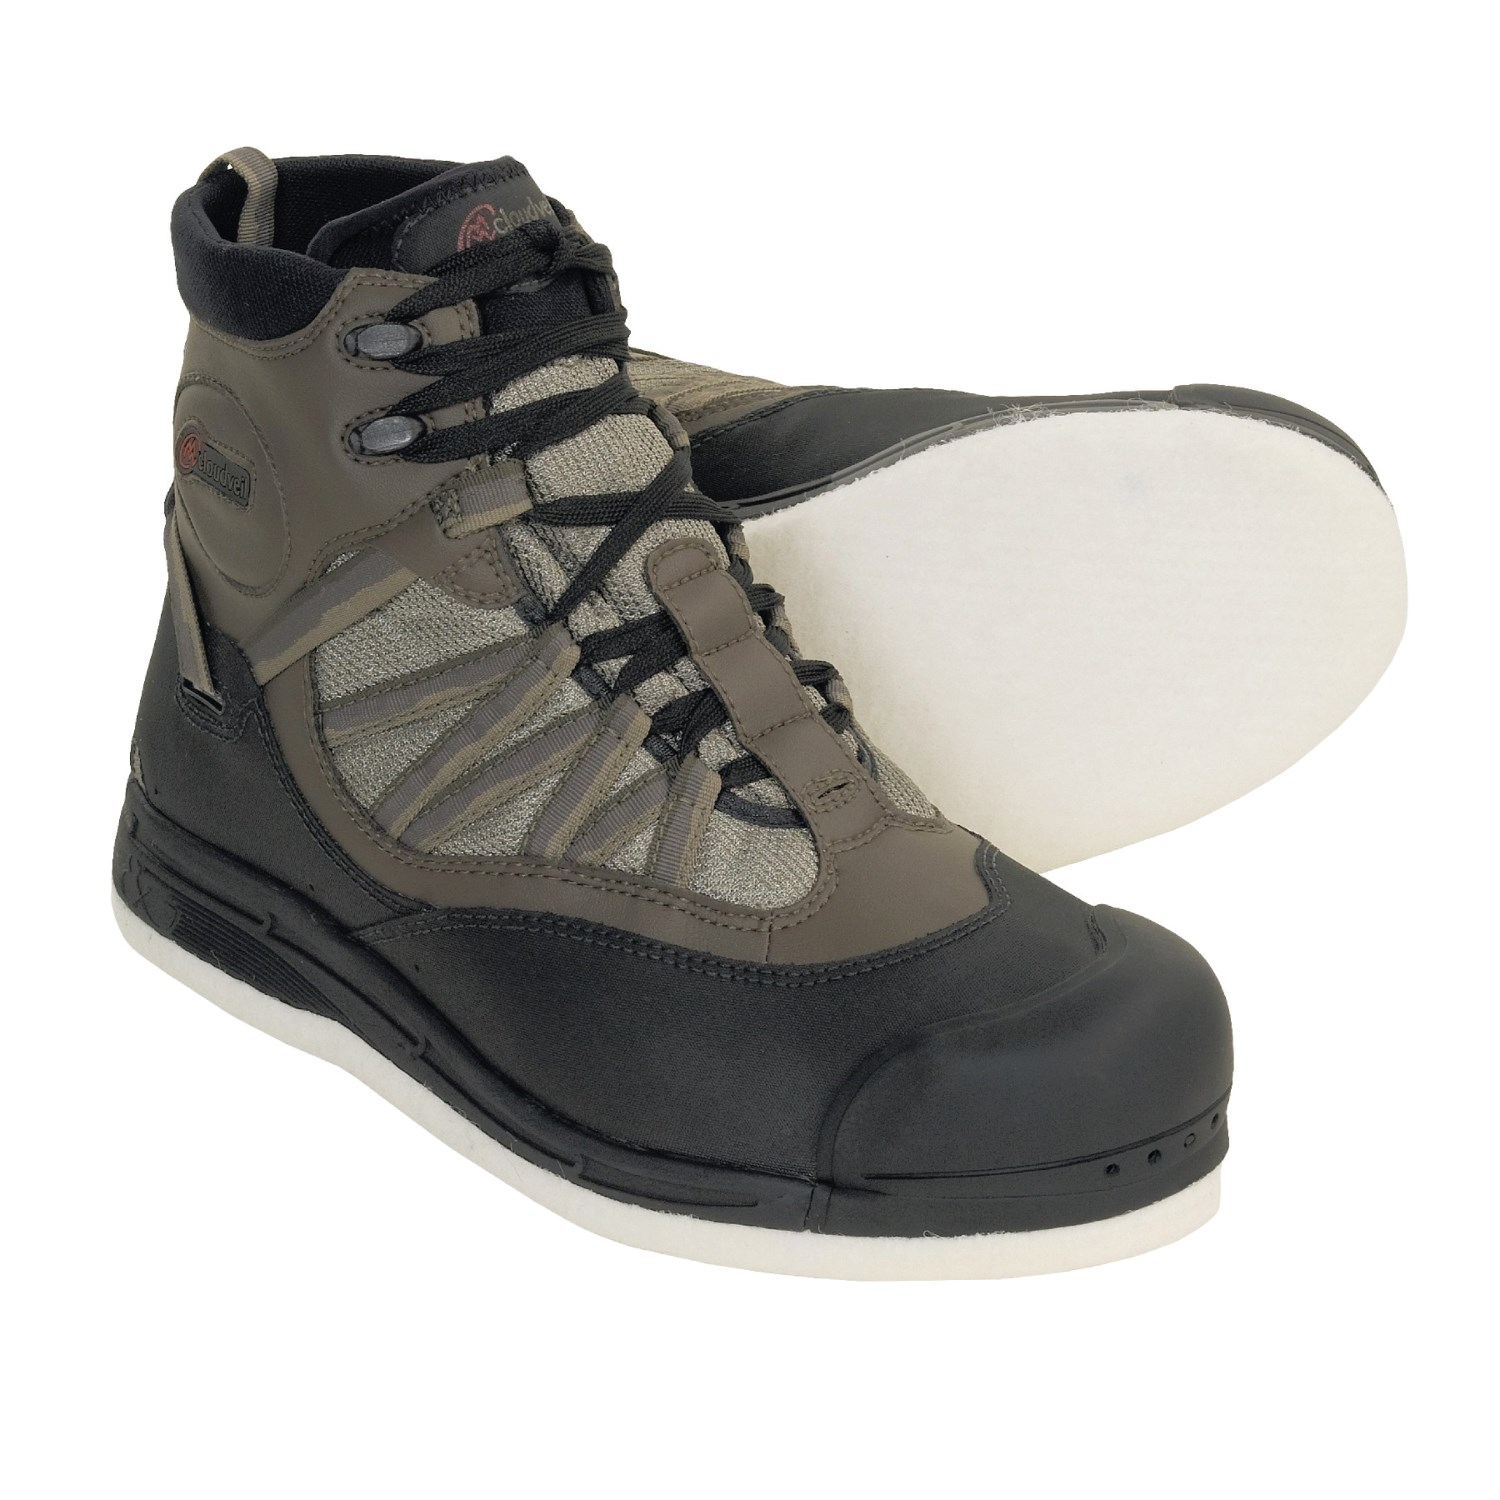 Cloudveil fishing boots images for Wading shoes for fishing